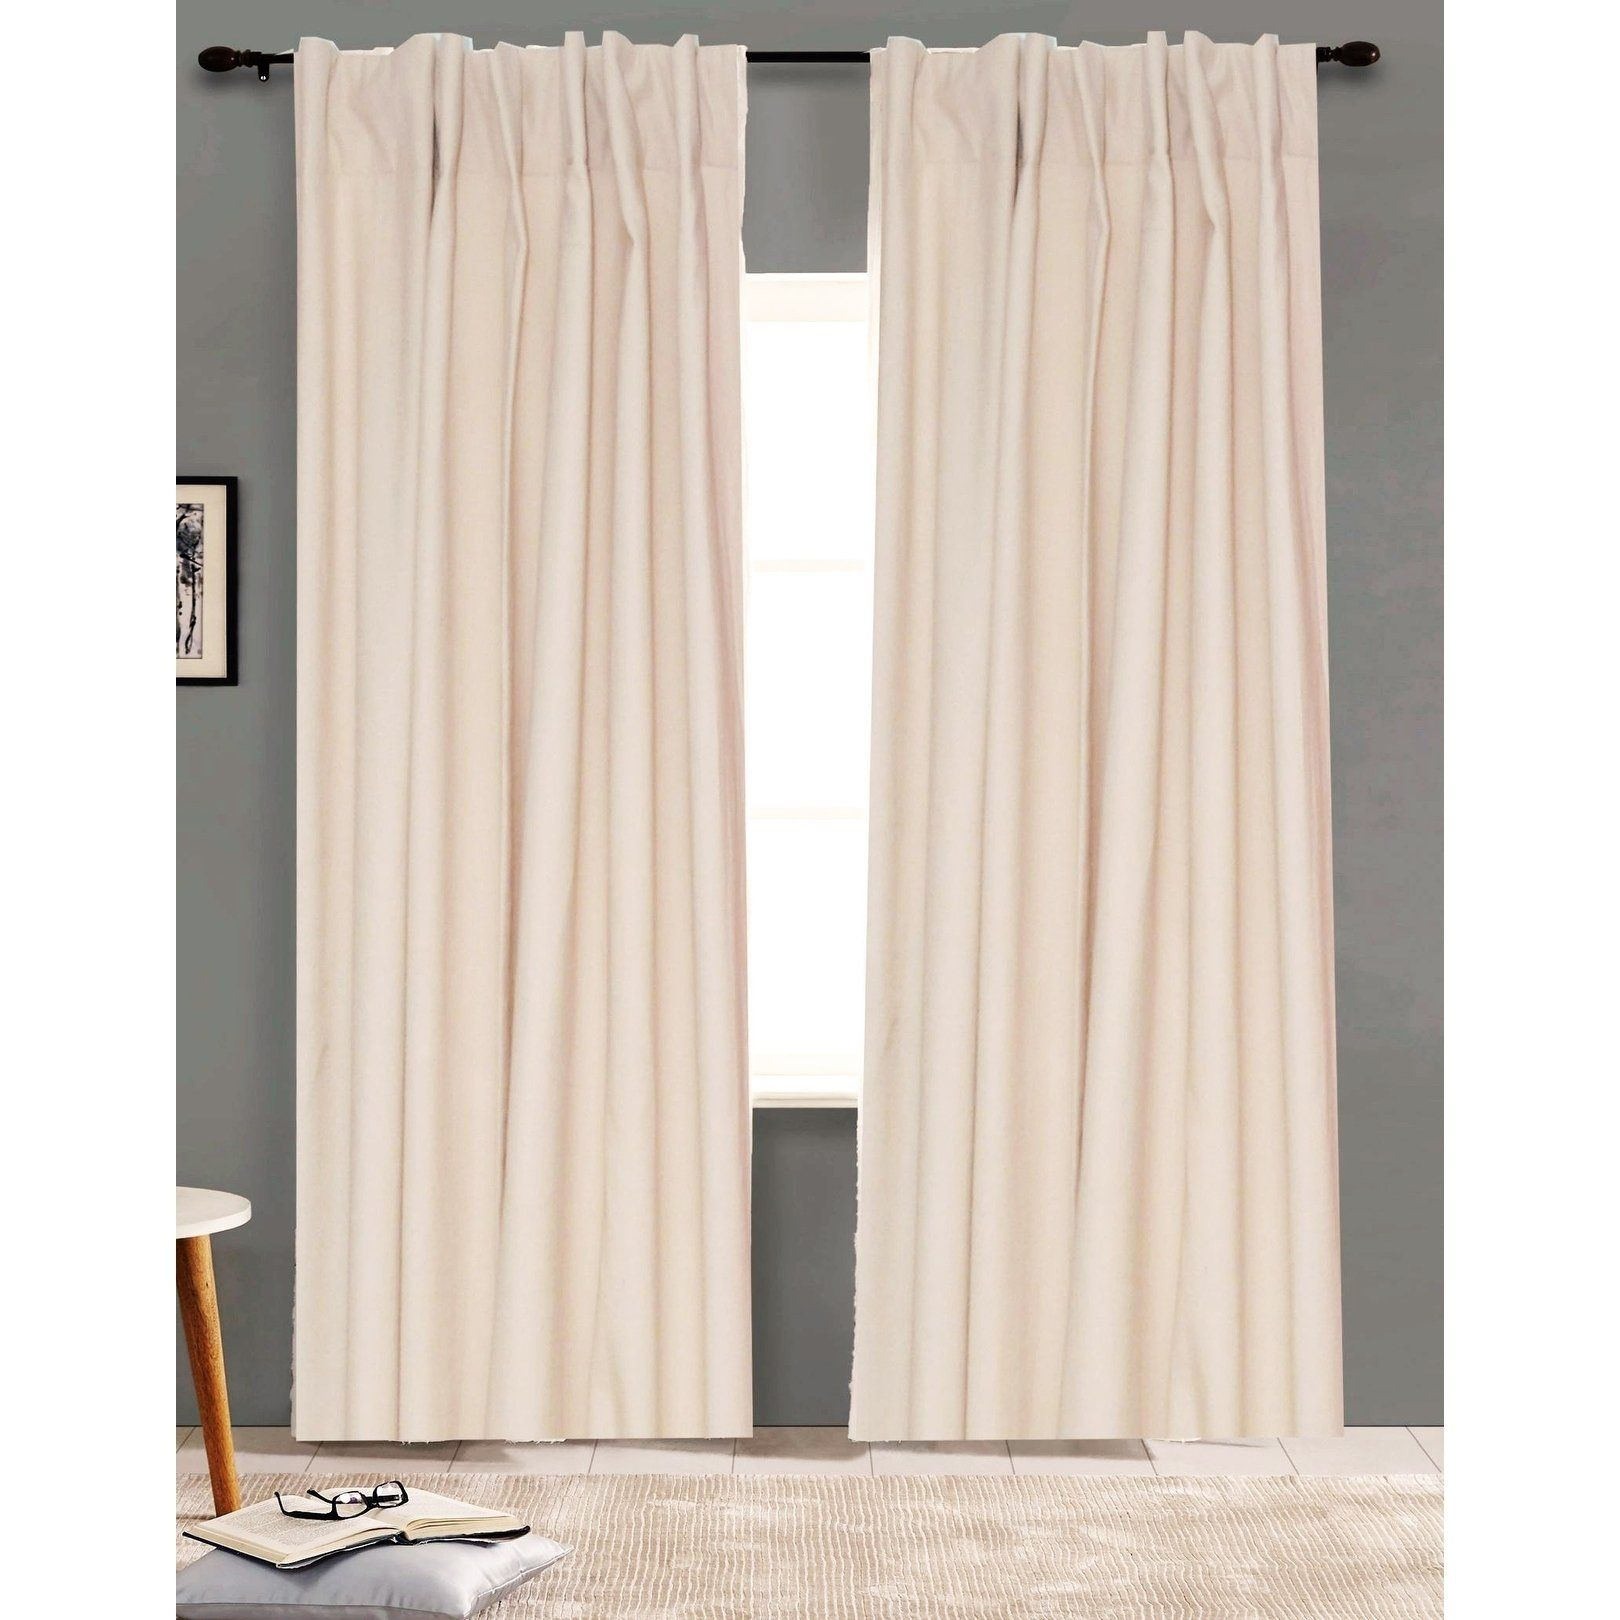 American Colors Brand Heritage Cotton Solid Curtain Panels